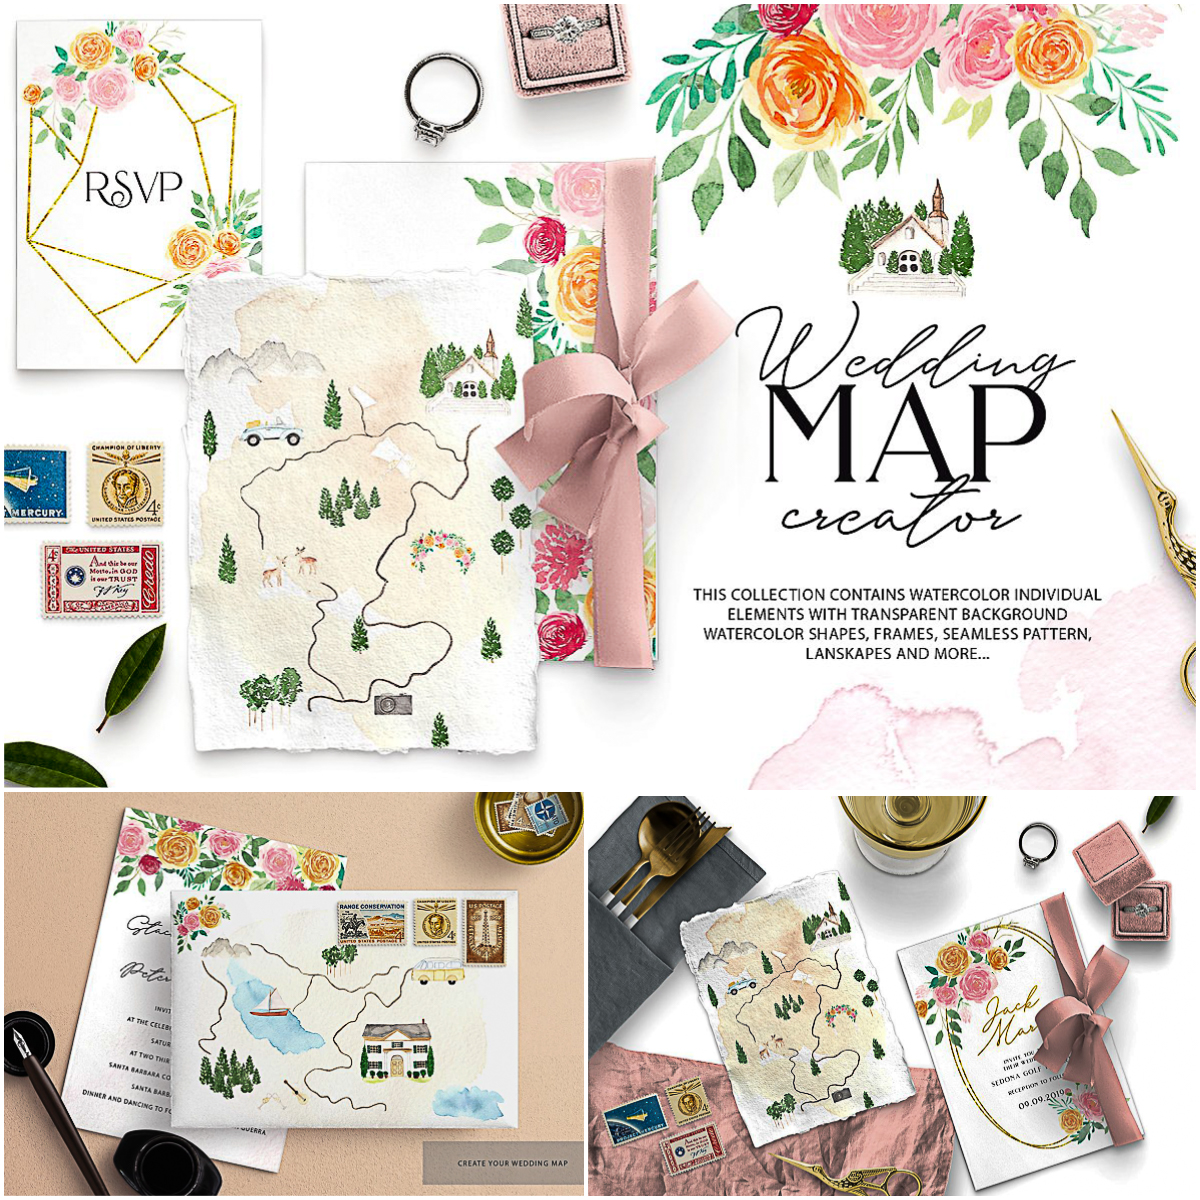 Watercolour Wedding Map Creator Kit | Free download on world map outline, map marker, map scale, map of africa, map making, map of c, map of germany, map background, map name, map world, map of us national parks, map of westeros, map north, site map creator, map title, map layers, map star, map pushpin icon, map country, map colors, map of europe and united states, grid map, map illustrator, map projection, map history, map of canada,